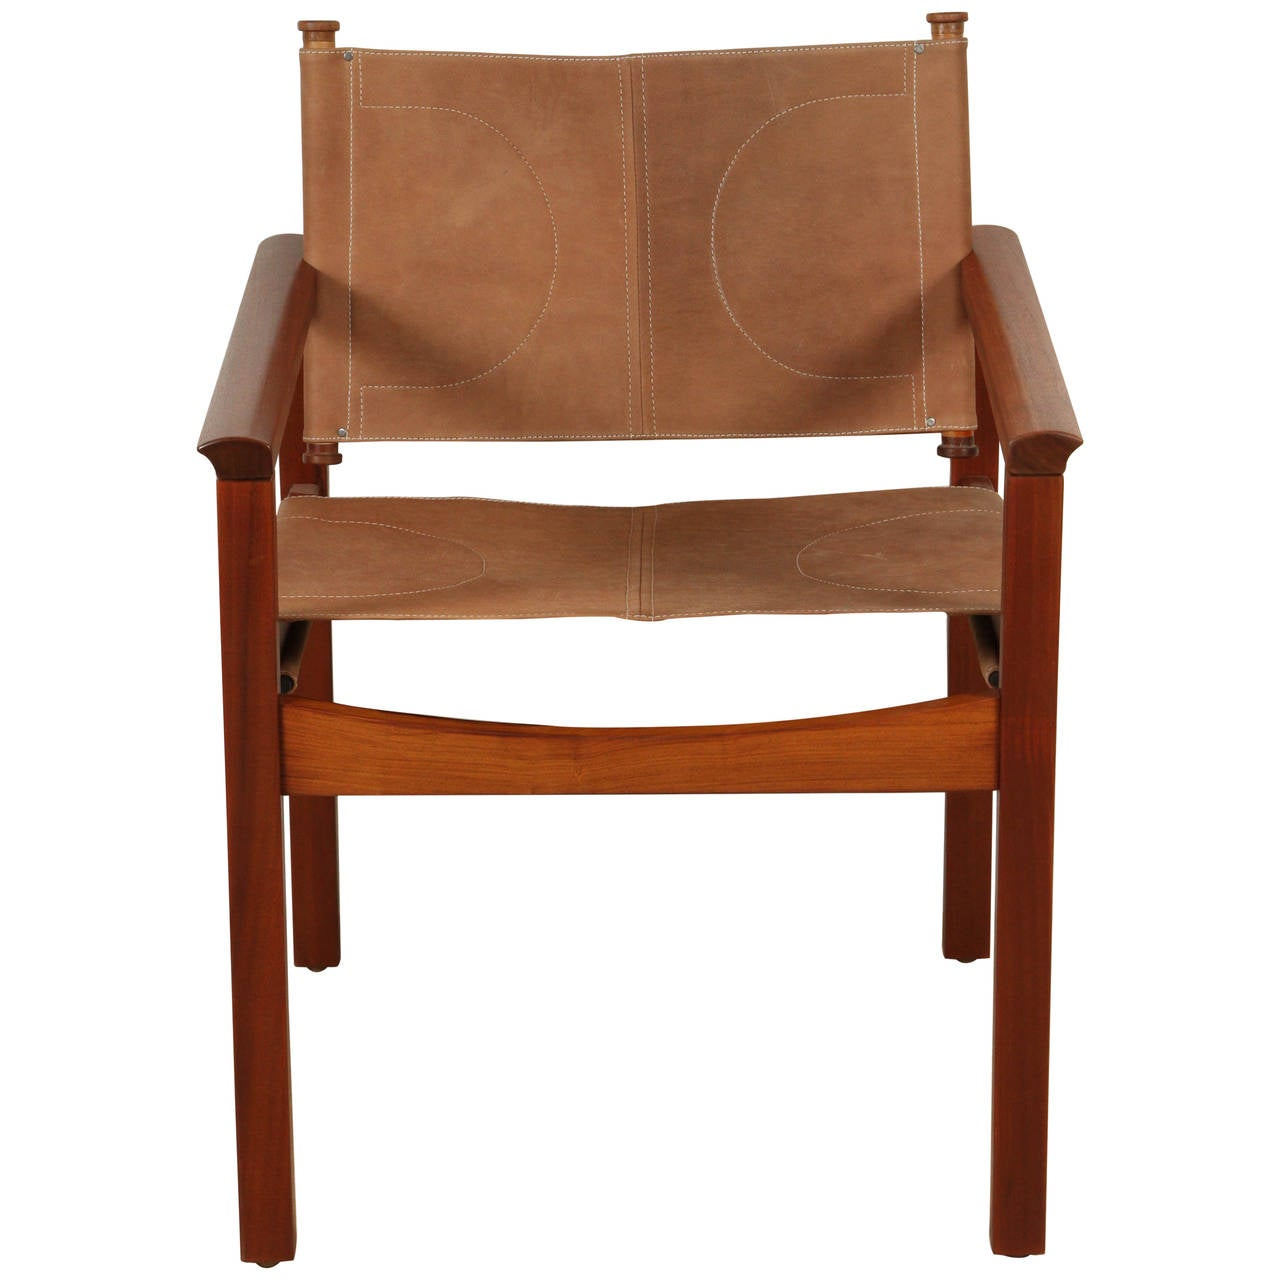 Leather Sling Chair By Michel Arnoult At 1stdibs